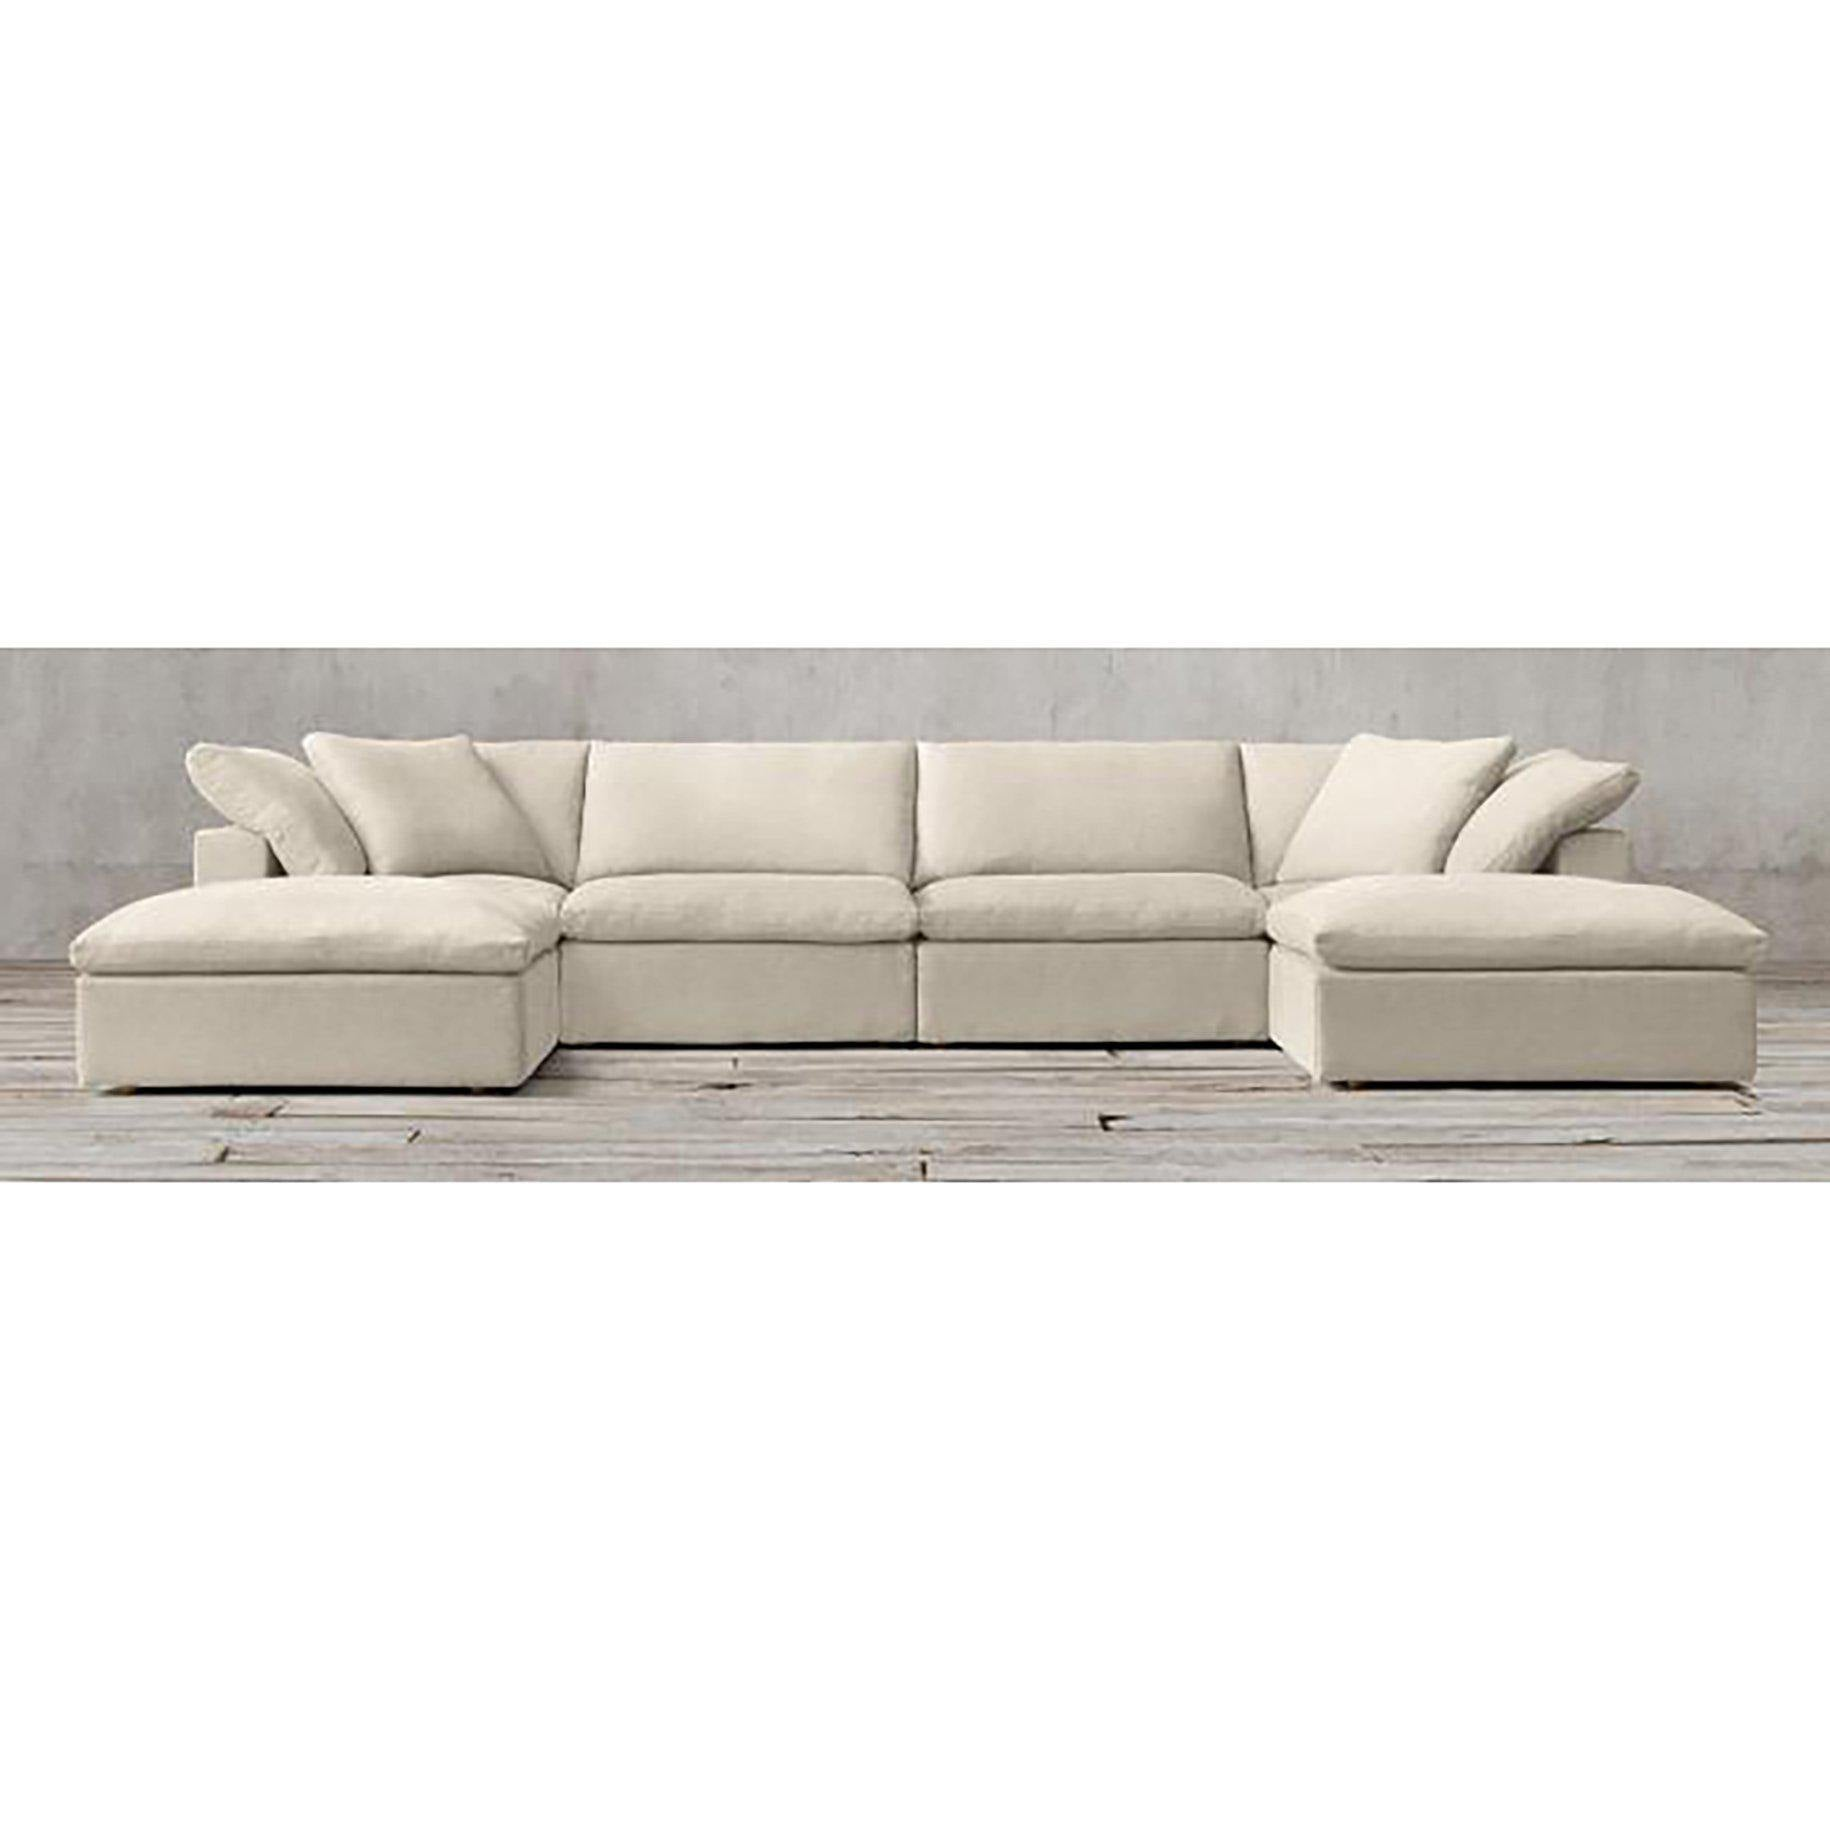 Sandbar Sectional In Natural Linen-FURNITURE-Maker & Moss